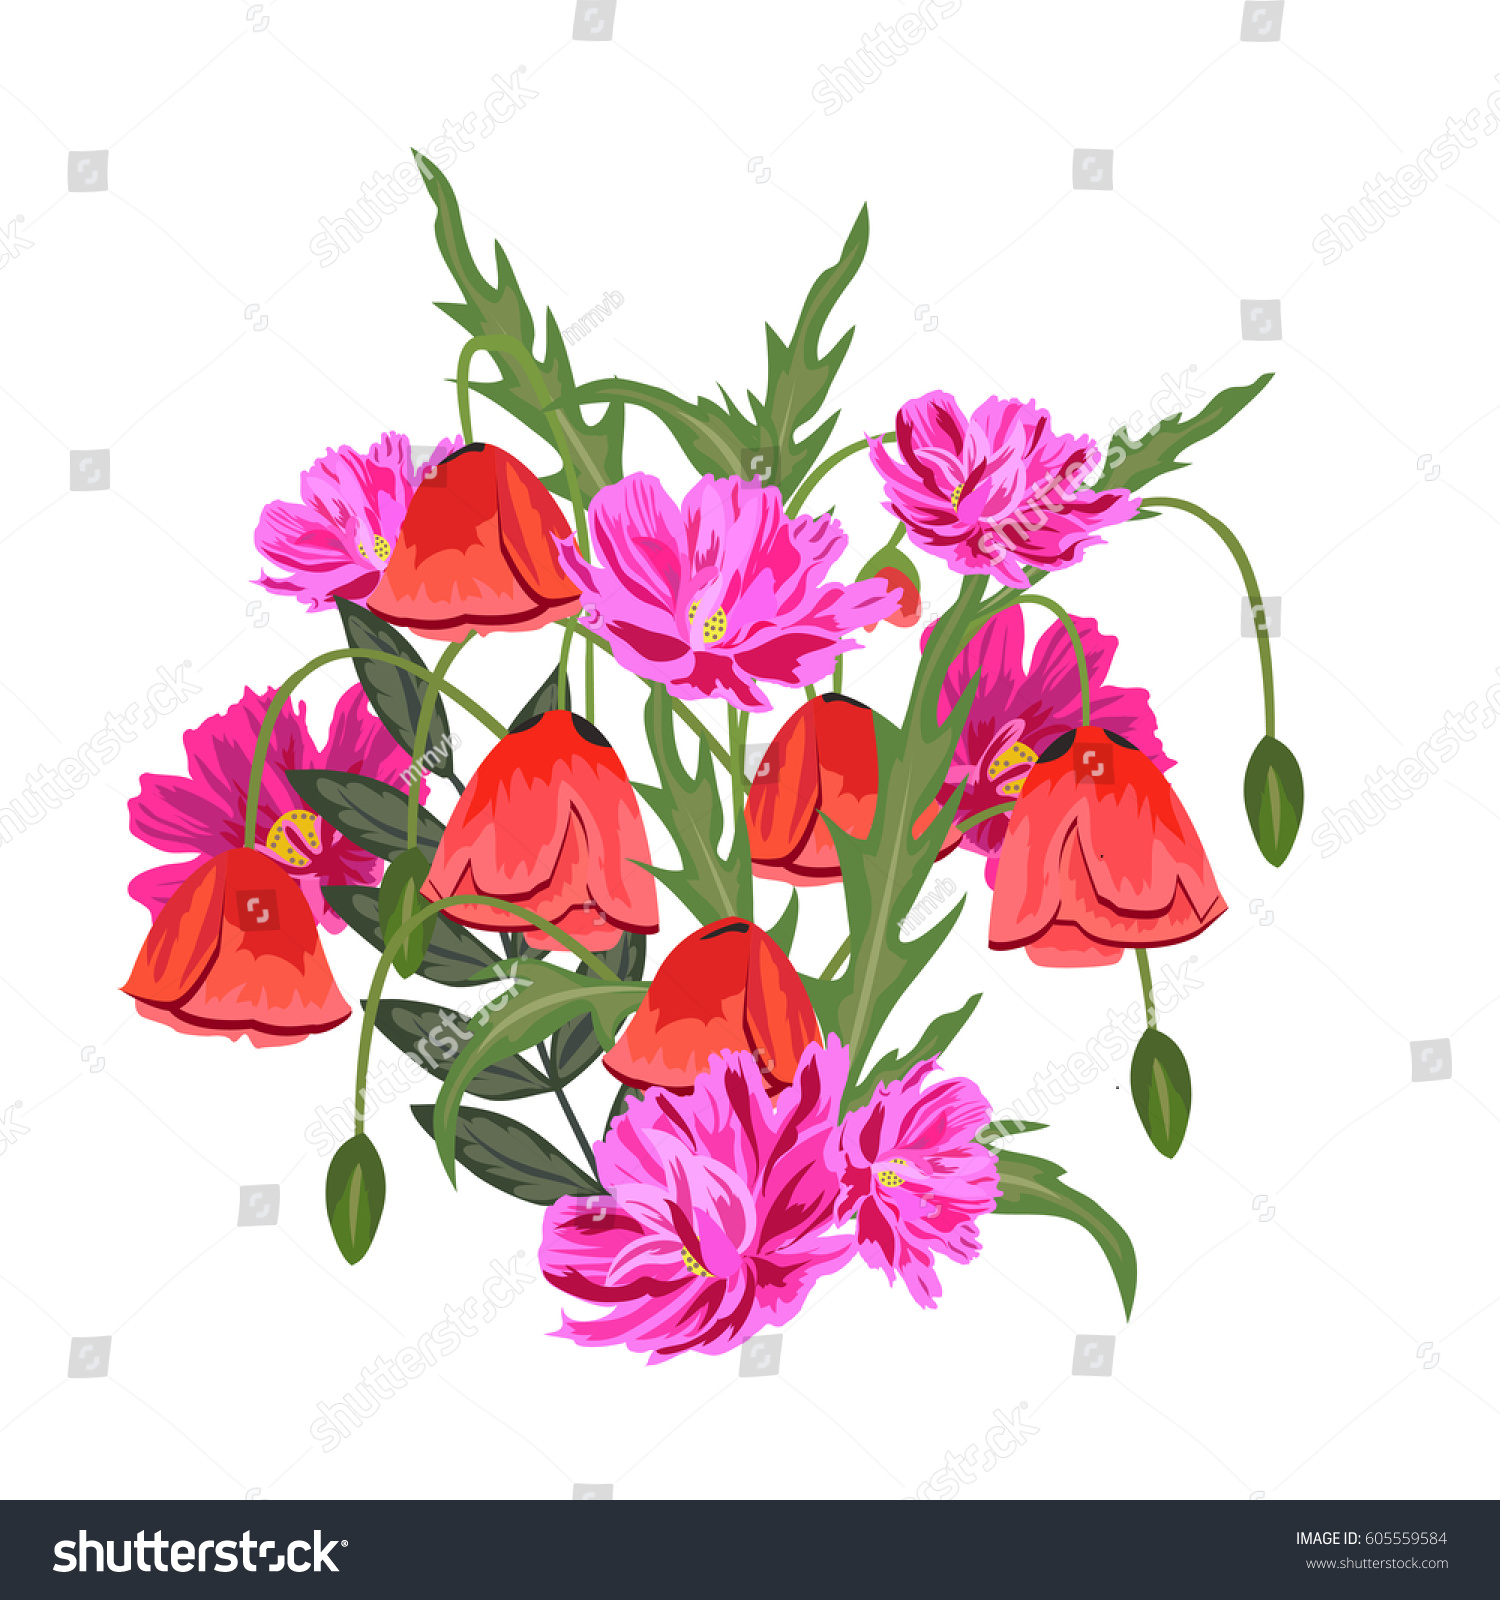 Bouquet Meadow Flowers Red Poppies Decor Stock Vector (Royalty Free ...